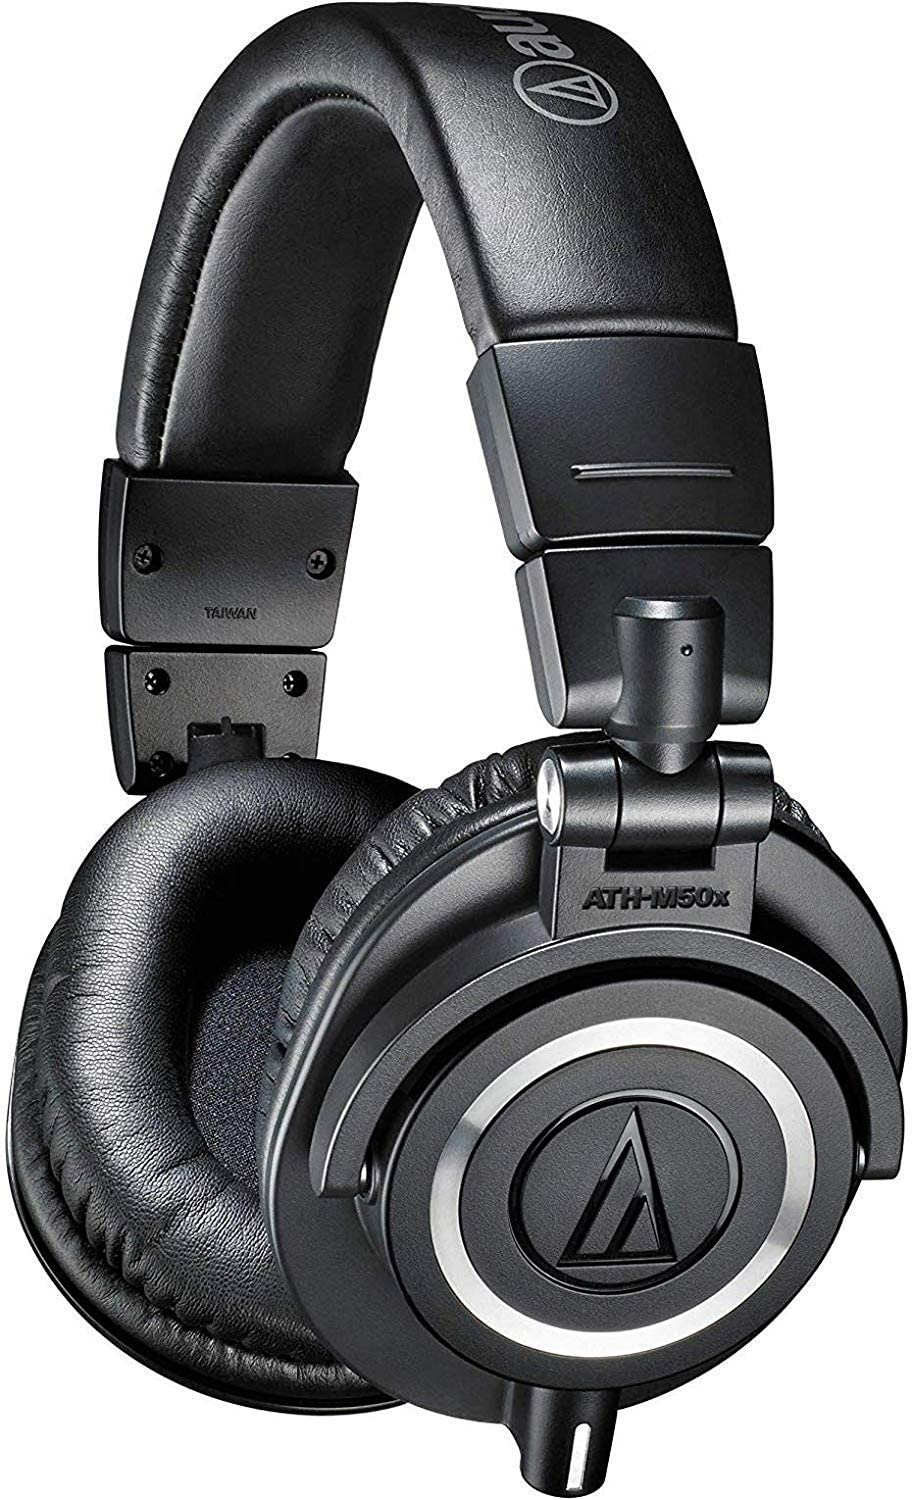 Audio-Technica ATH-M50x Professional Studio Monitor Headphones, Black, Professional-Grade, Critically Acclaimed, With Detachable Cable